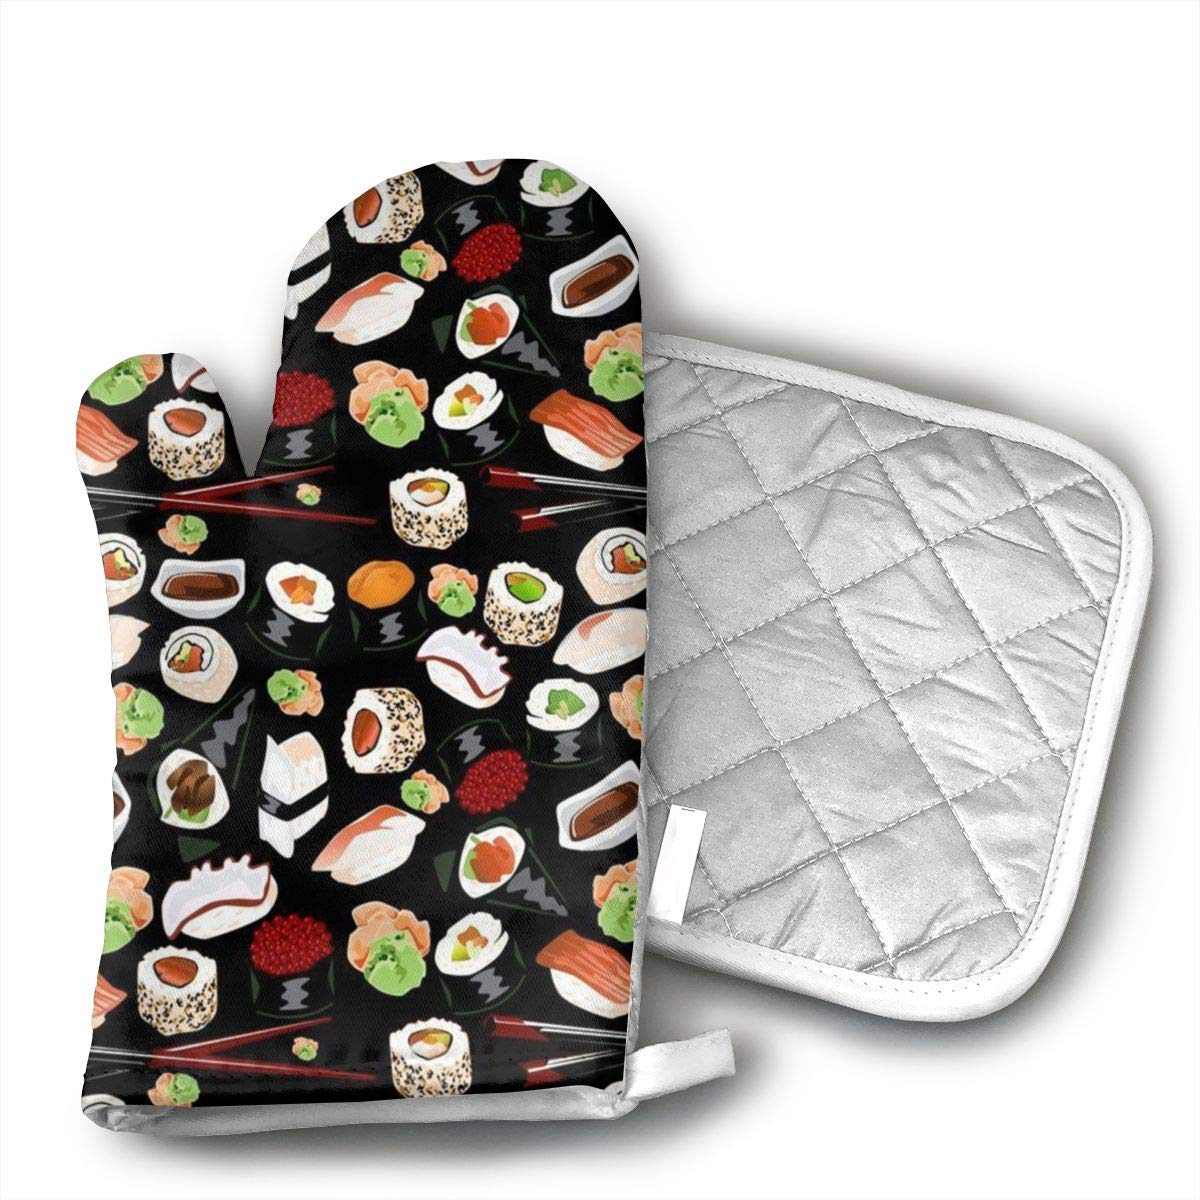 Wiqo9 Japanese Sushi Oven Mitts and Pot Holders Kitchen Mitten Cooking Gloves,Cooking, Baking, BBQ.